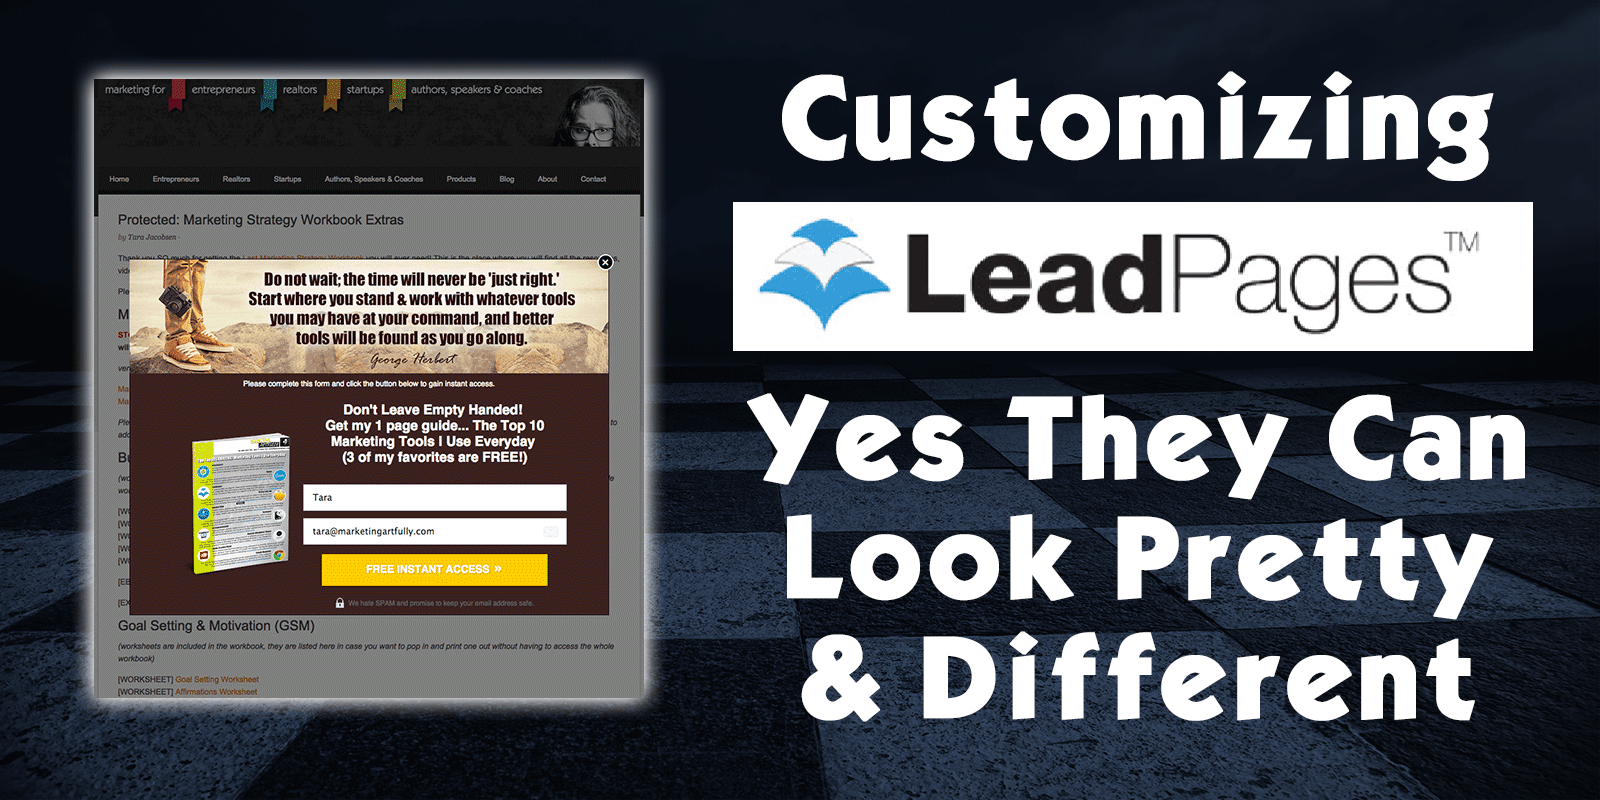 Customizing Lead Pages - Yes They Can Look Pretty and Different